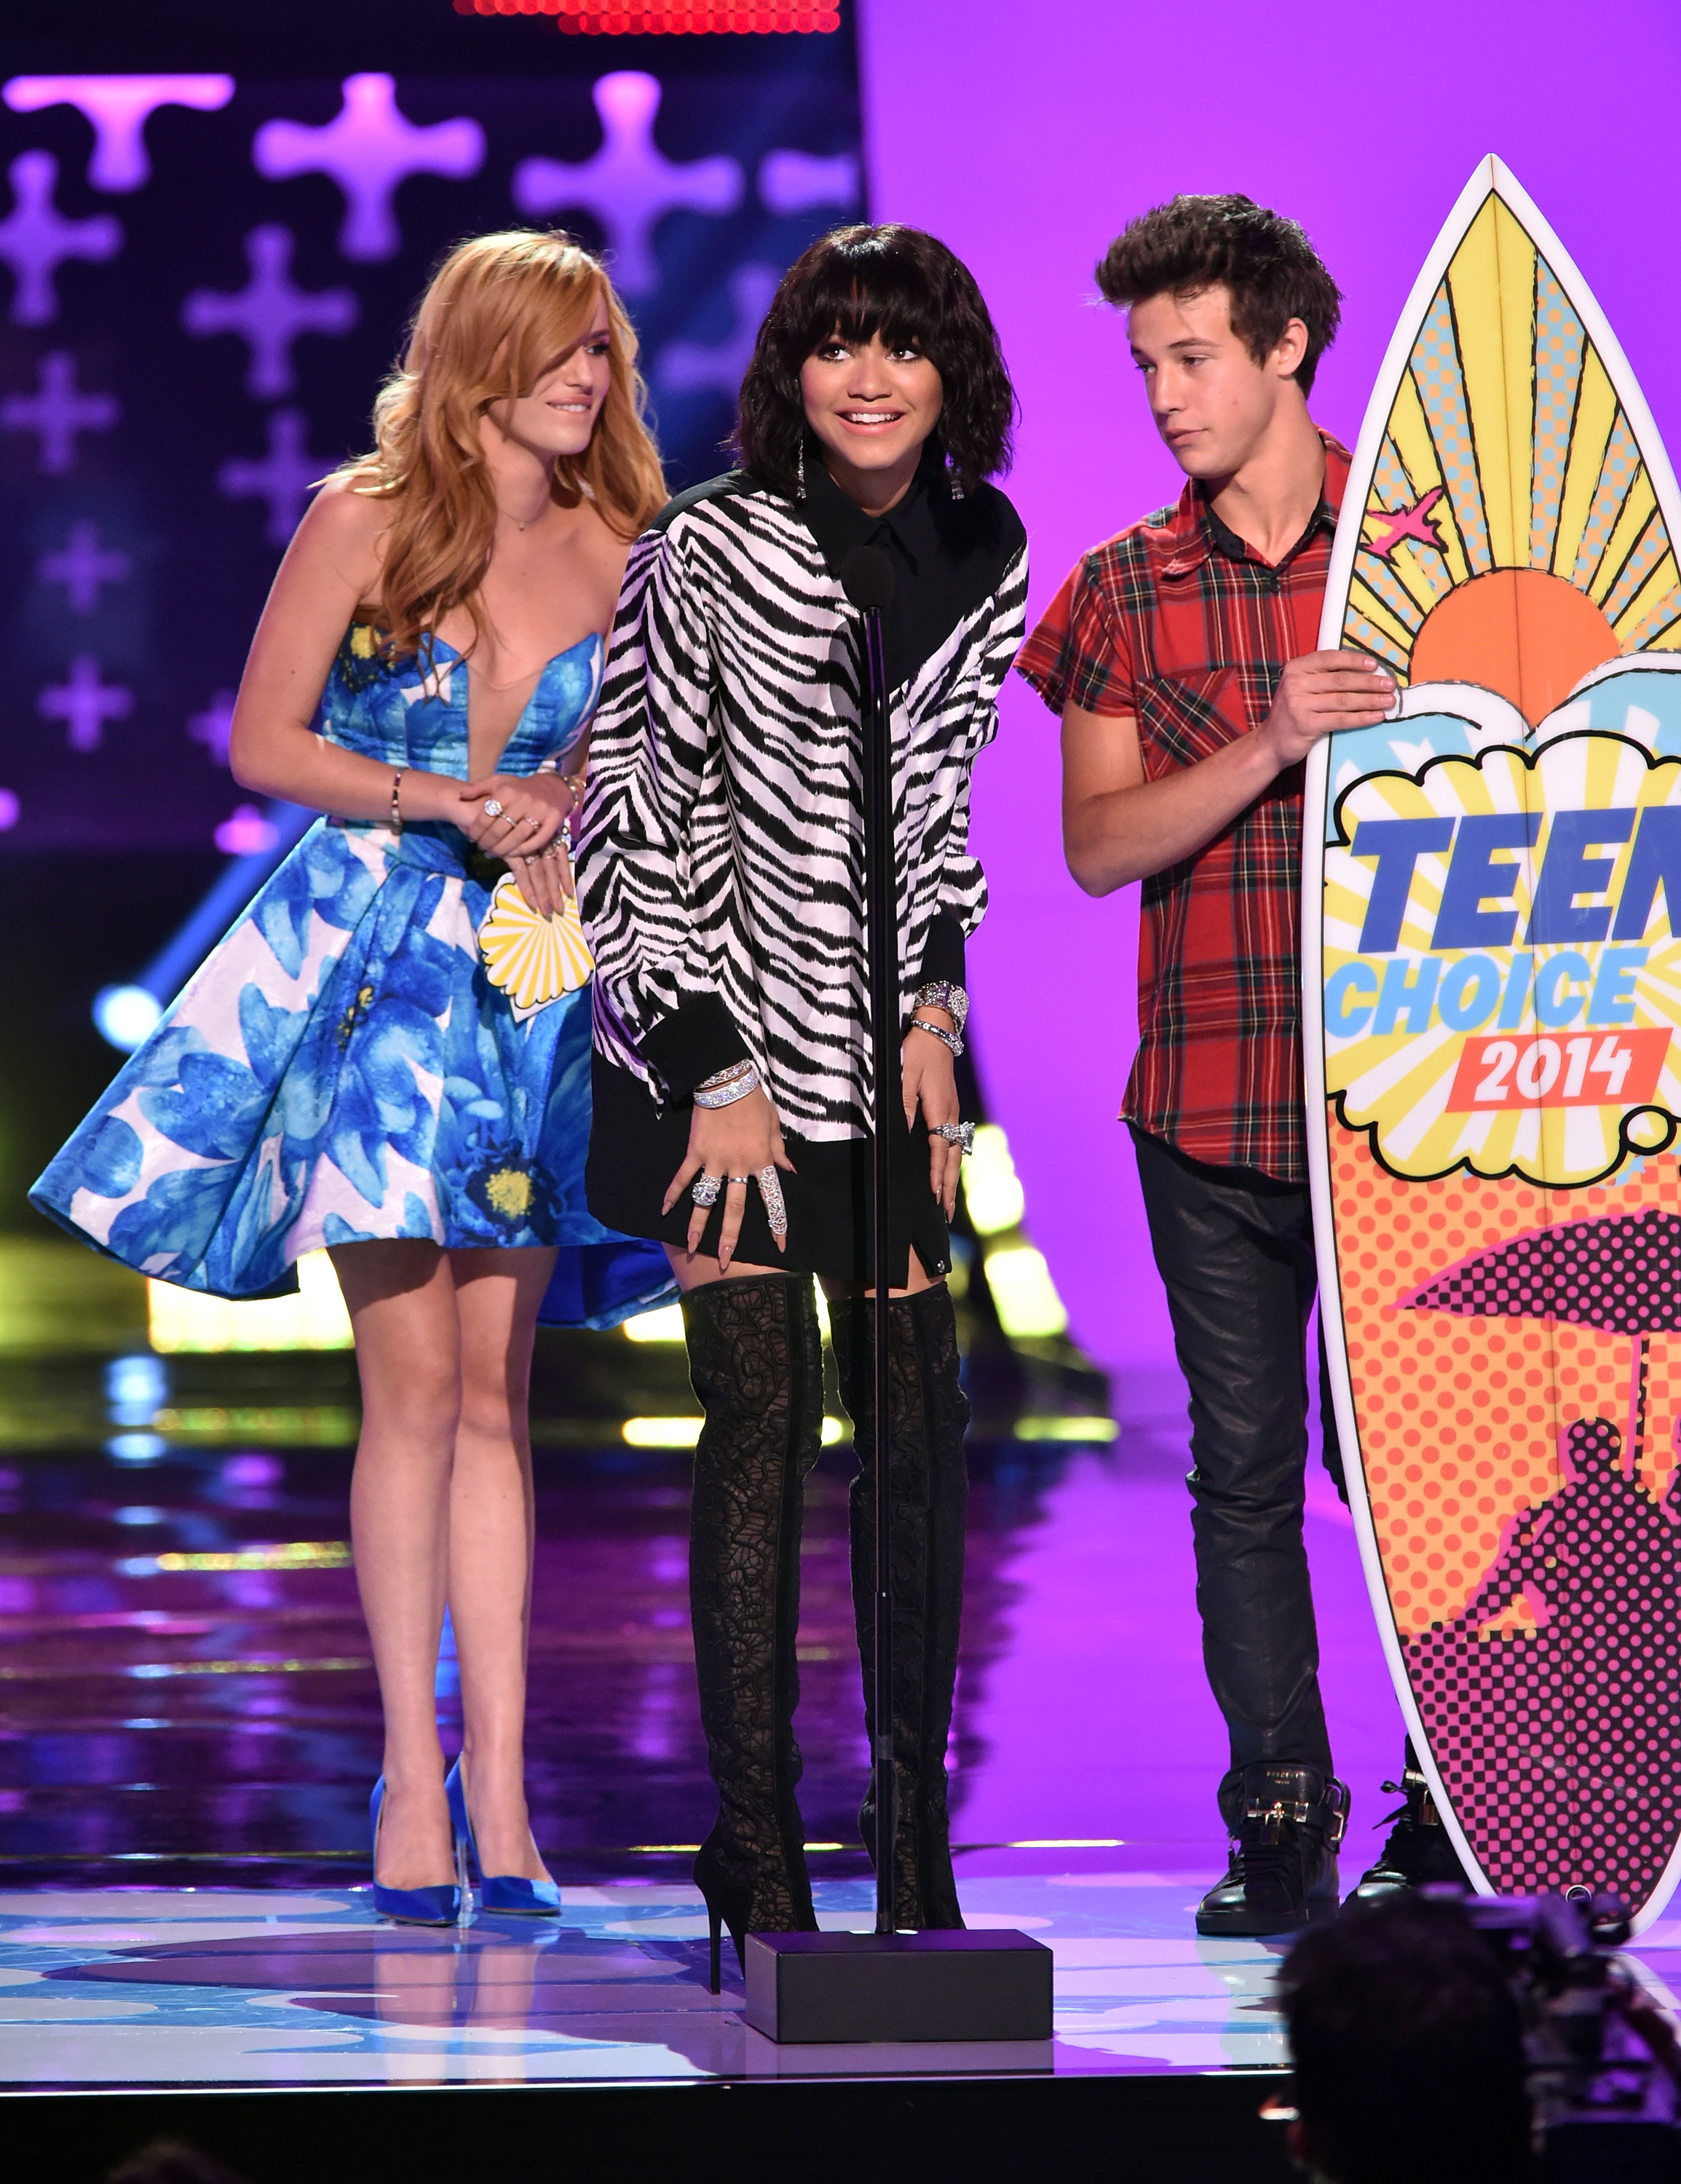 (L-R) Actress Bella Thorne, actress Zendaya, and internet personality Cameron Dallas onstage during FOX's 2014 Teen Choice Awards at The Shrine Auditorium on August 10, 2014 in Los Angeles, California.